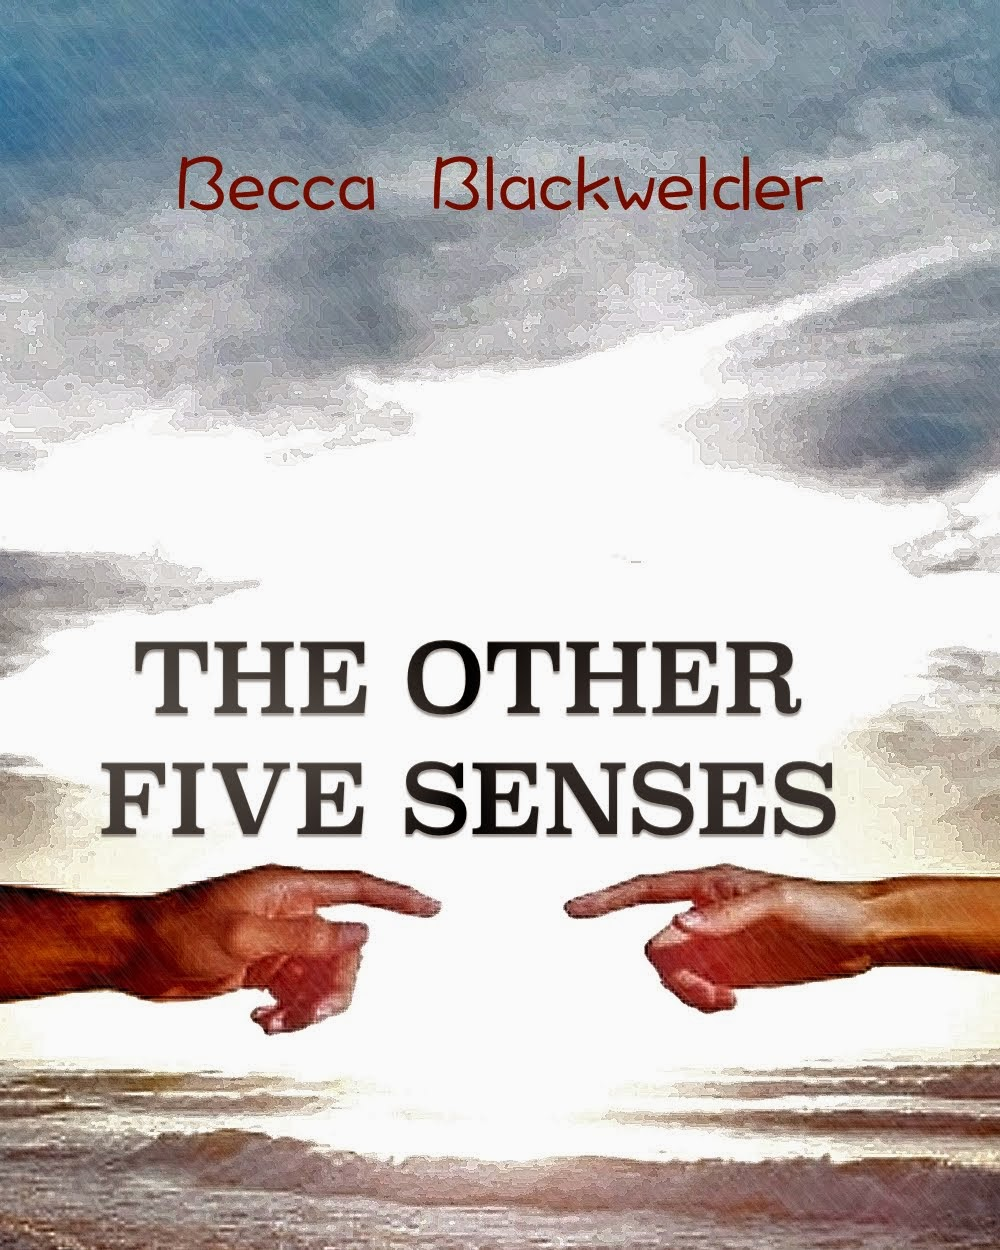 The Other Five Senses